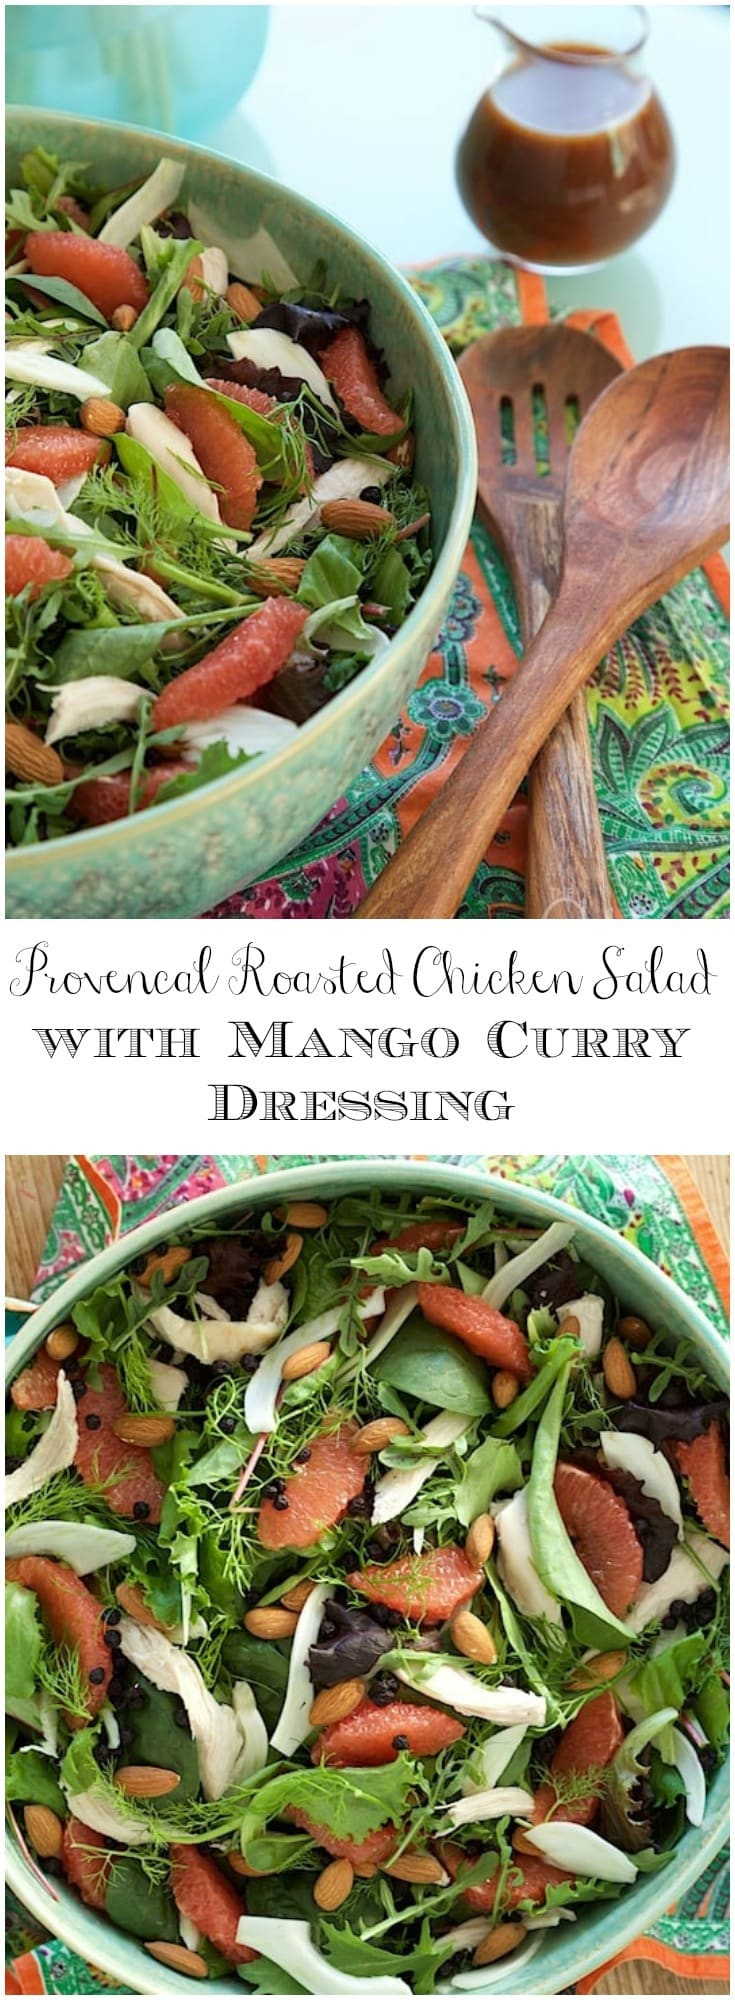 This Provencal Roasted Chicken Salad with Mango Curry Dressing has bright, delicious flavors that hearken back to a trip to Provence region of France.